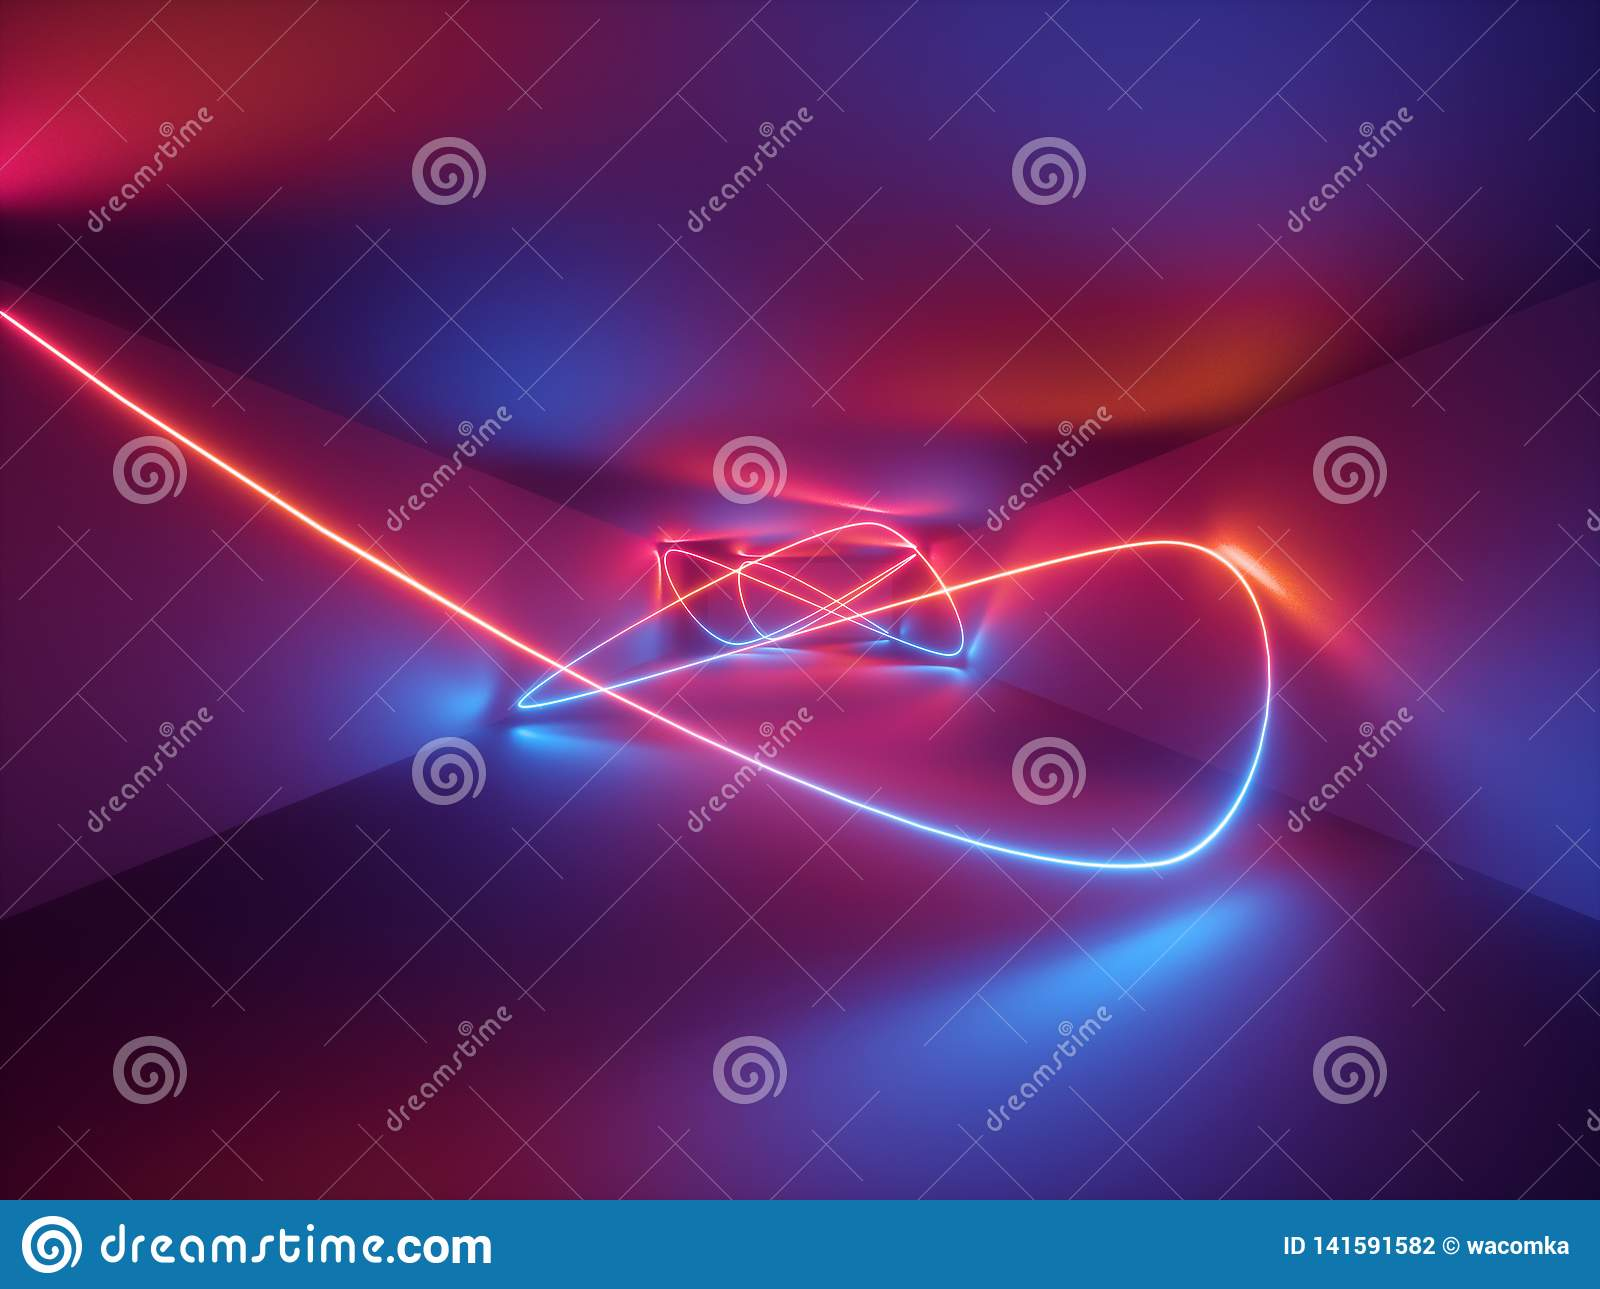 3d render, laser show, night club interior lights, red blue neon, abstract fluorescent background, glowing curvy lines, geometric